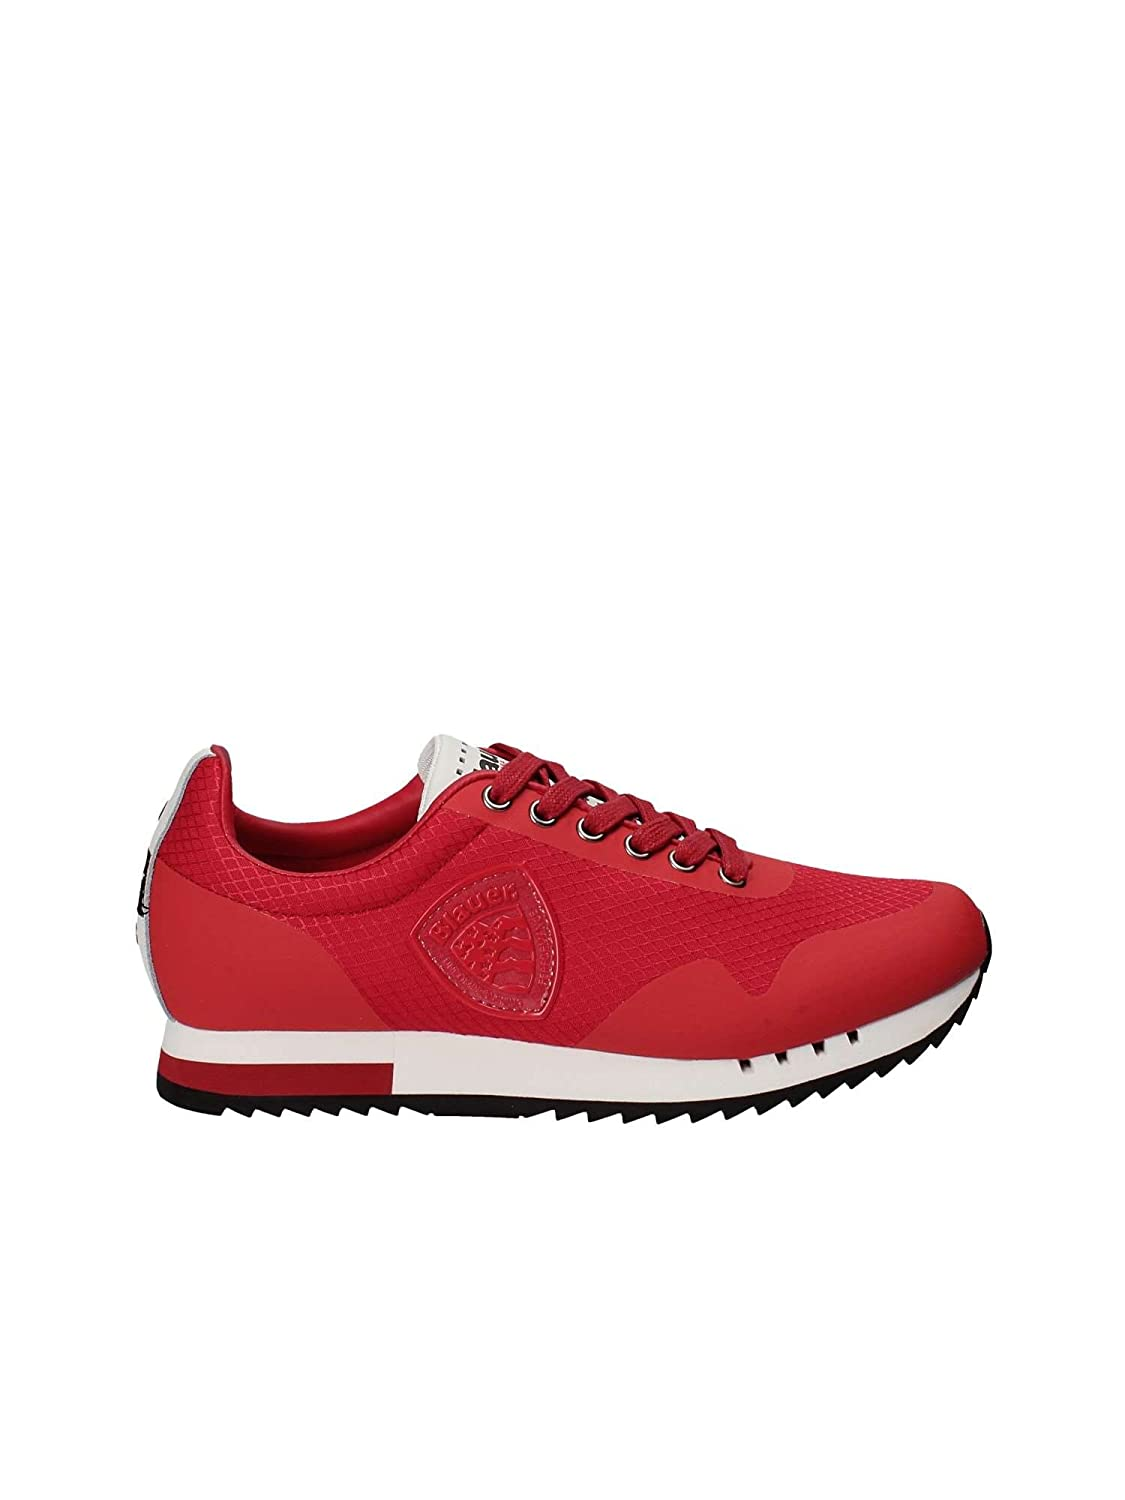 rouge rouge rouge bleuer USA 8SDETROIT04 MES paniers Homme 684